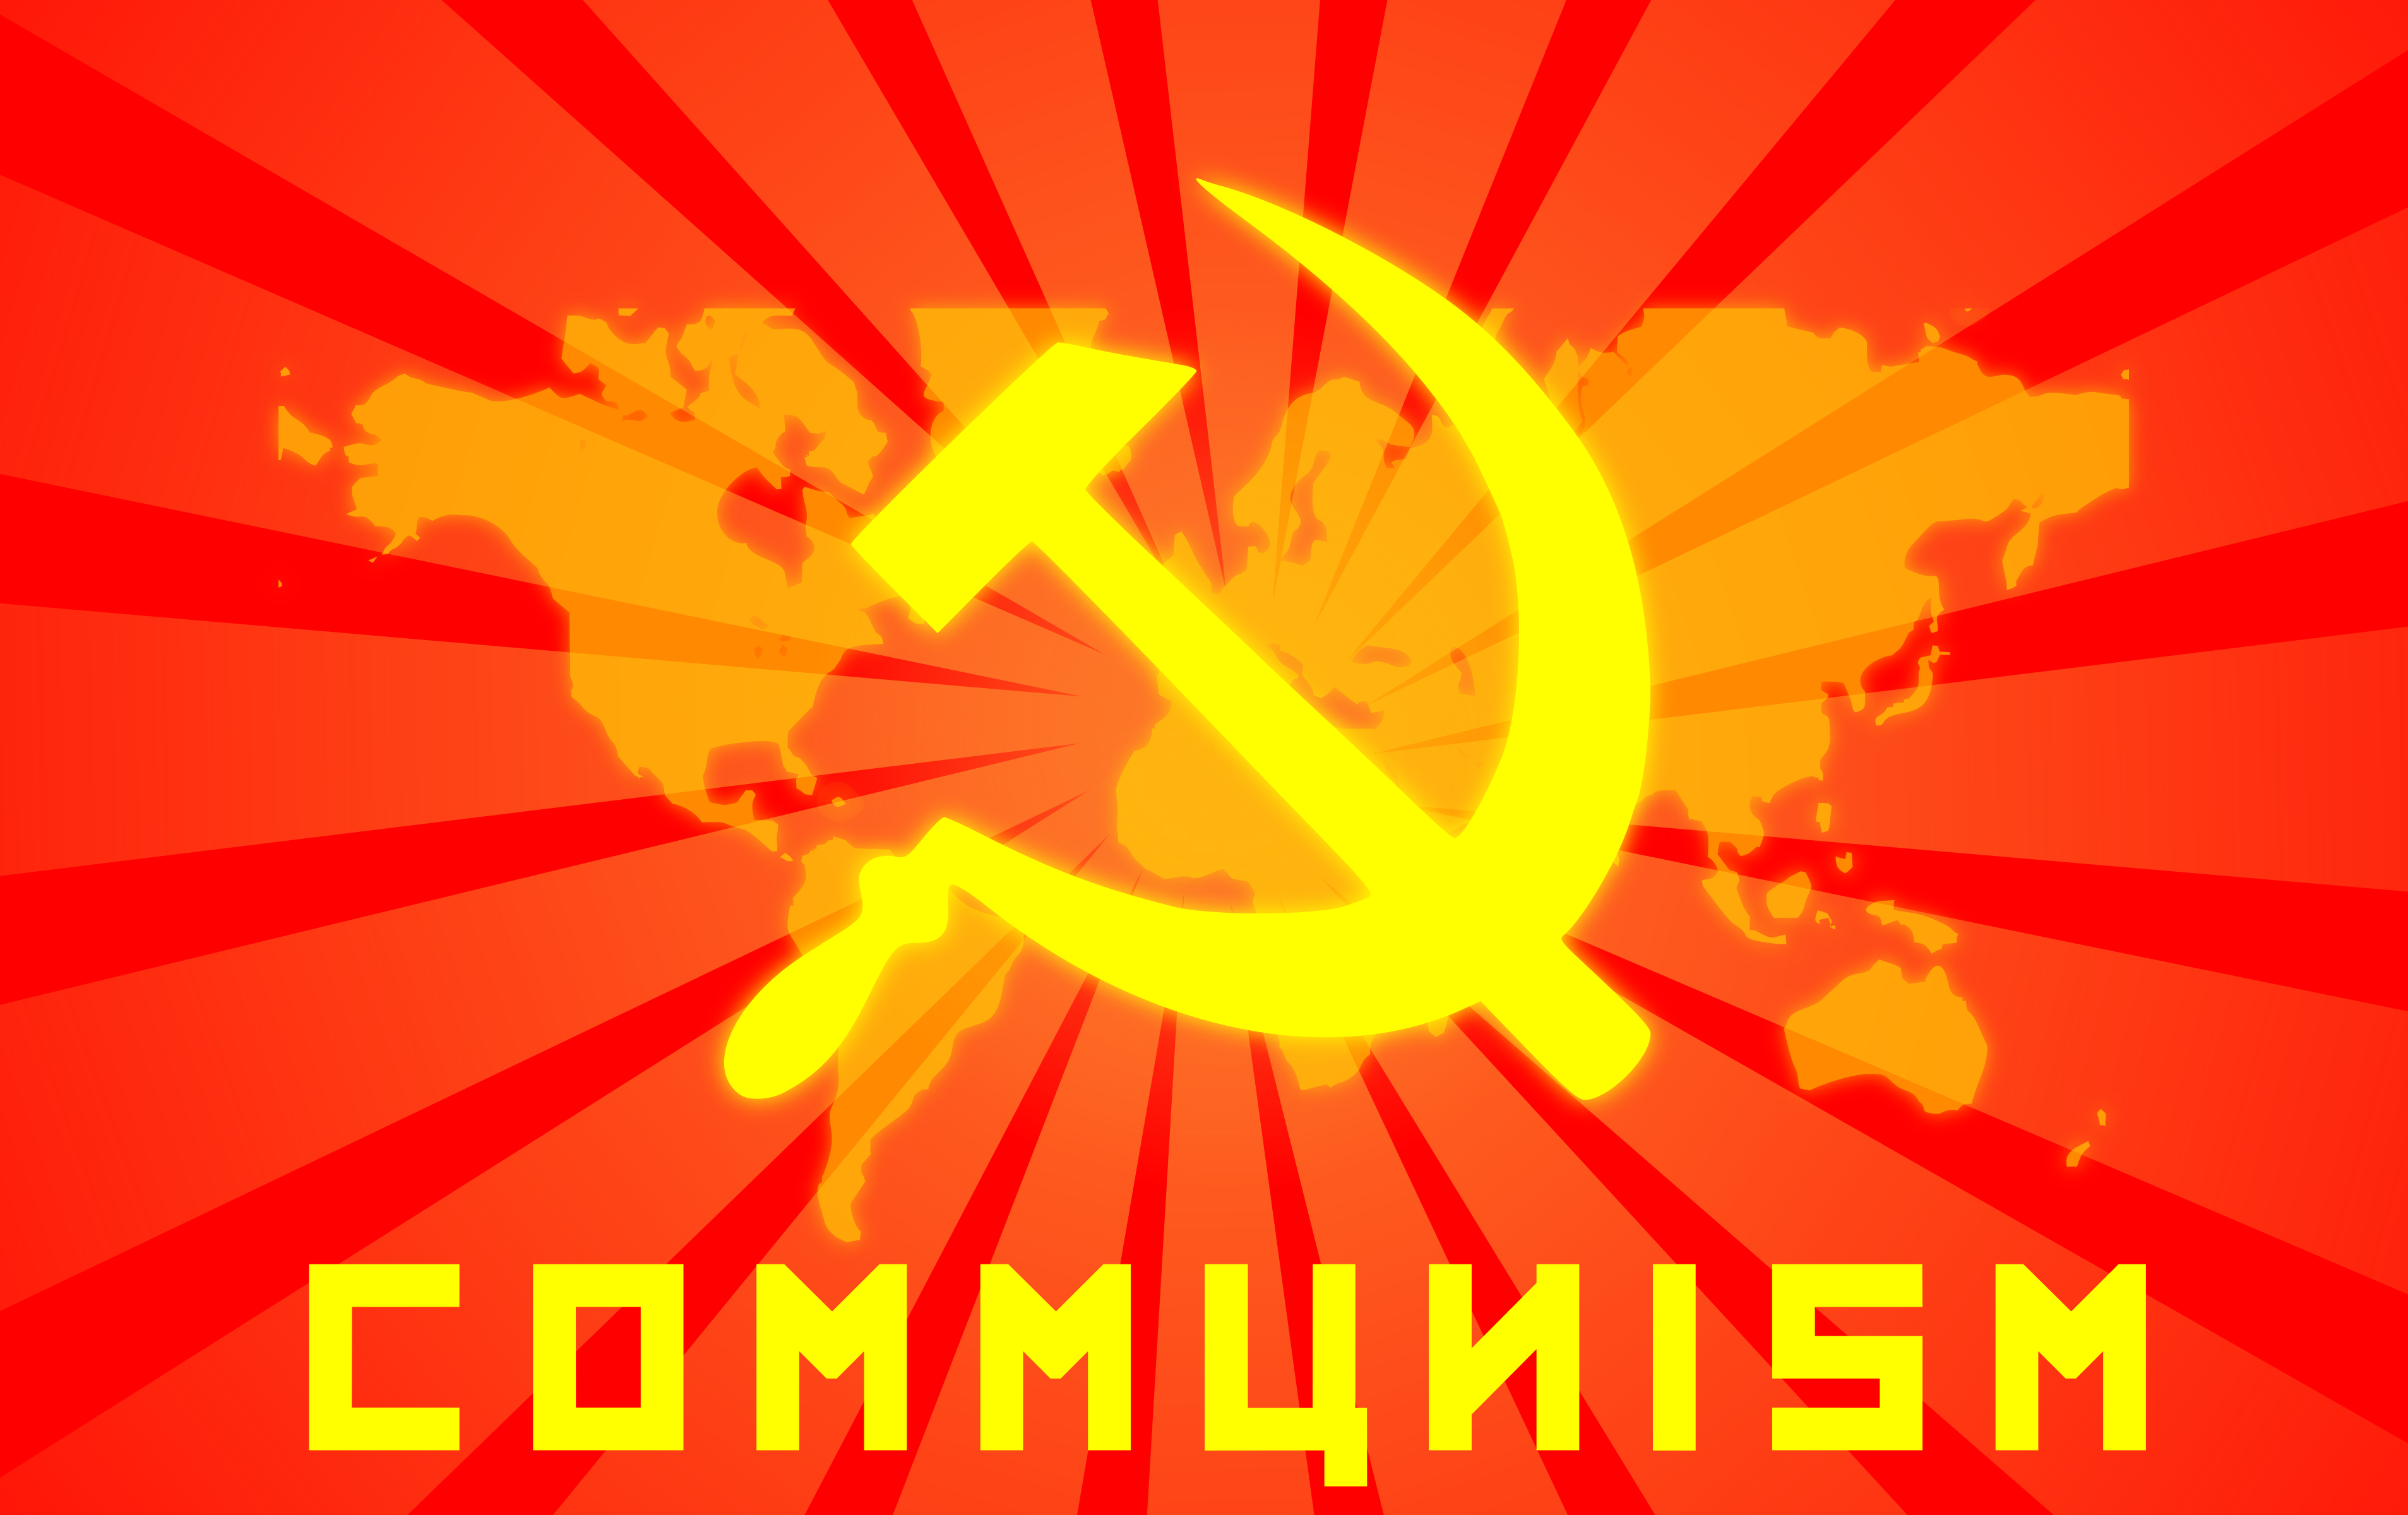 communism wallpaper by worker